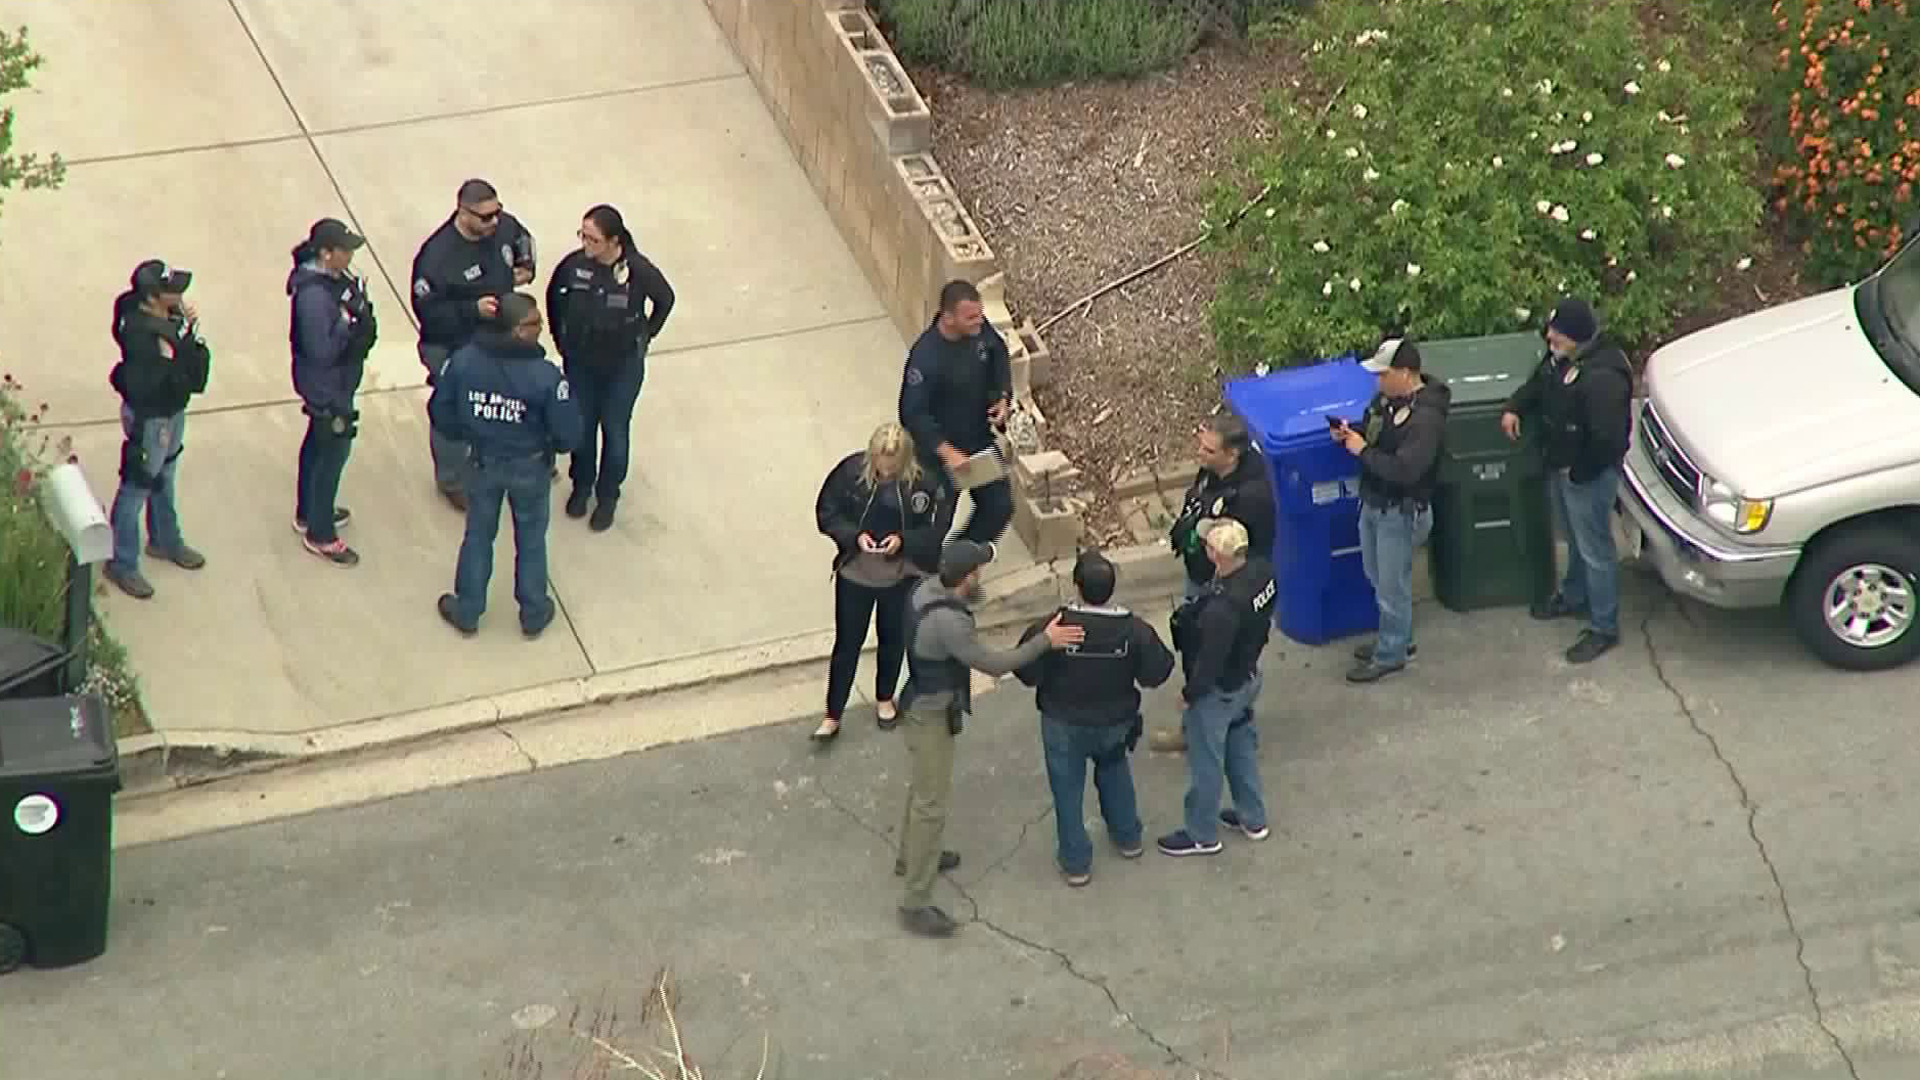 Officials respond to a barricaded situation in La Crescenta on May 2, 2018. (Credit: KTLA)